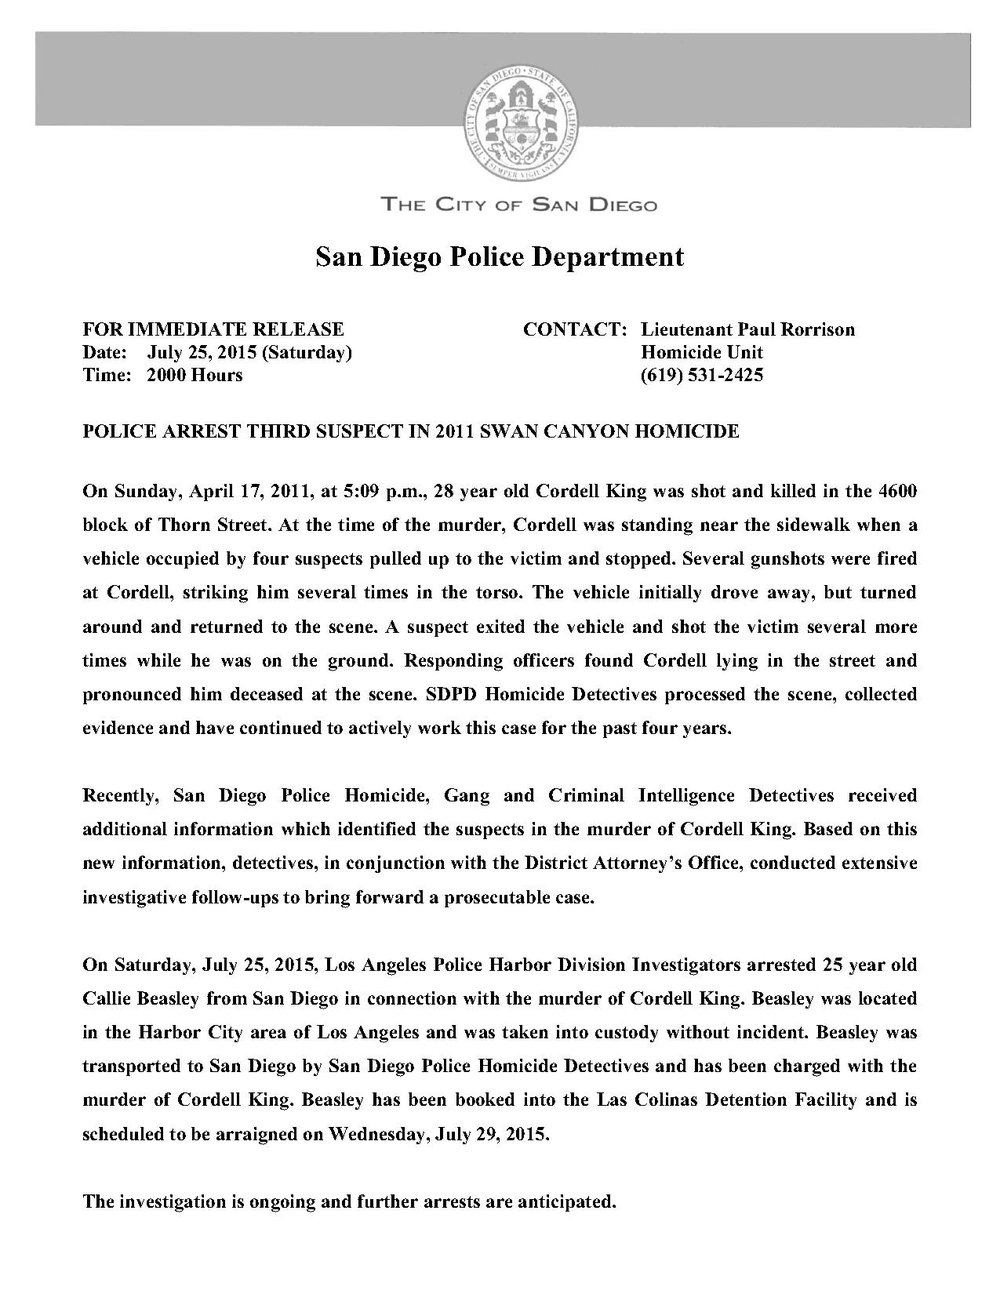 Press Release 7-25-15 Cordell King 187 arrest beasley_1